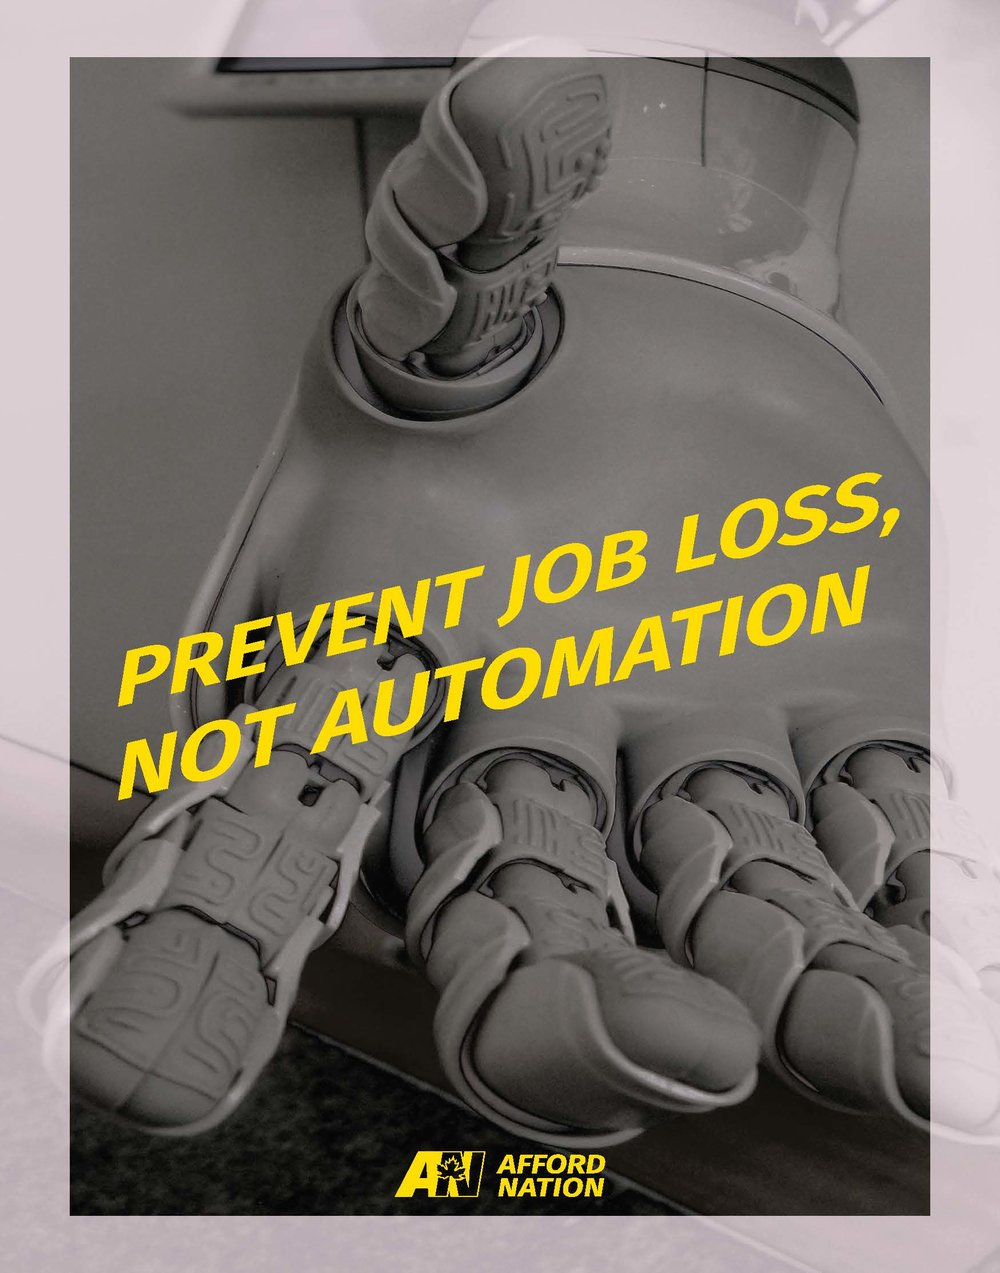 Prevent job loss, not automation